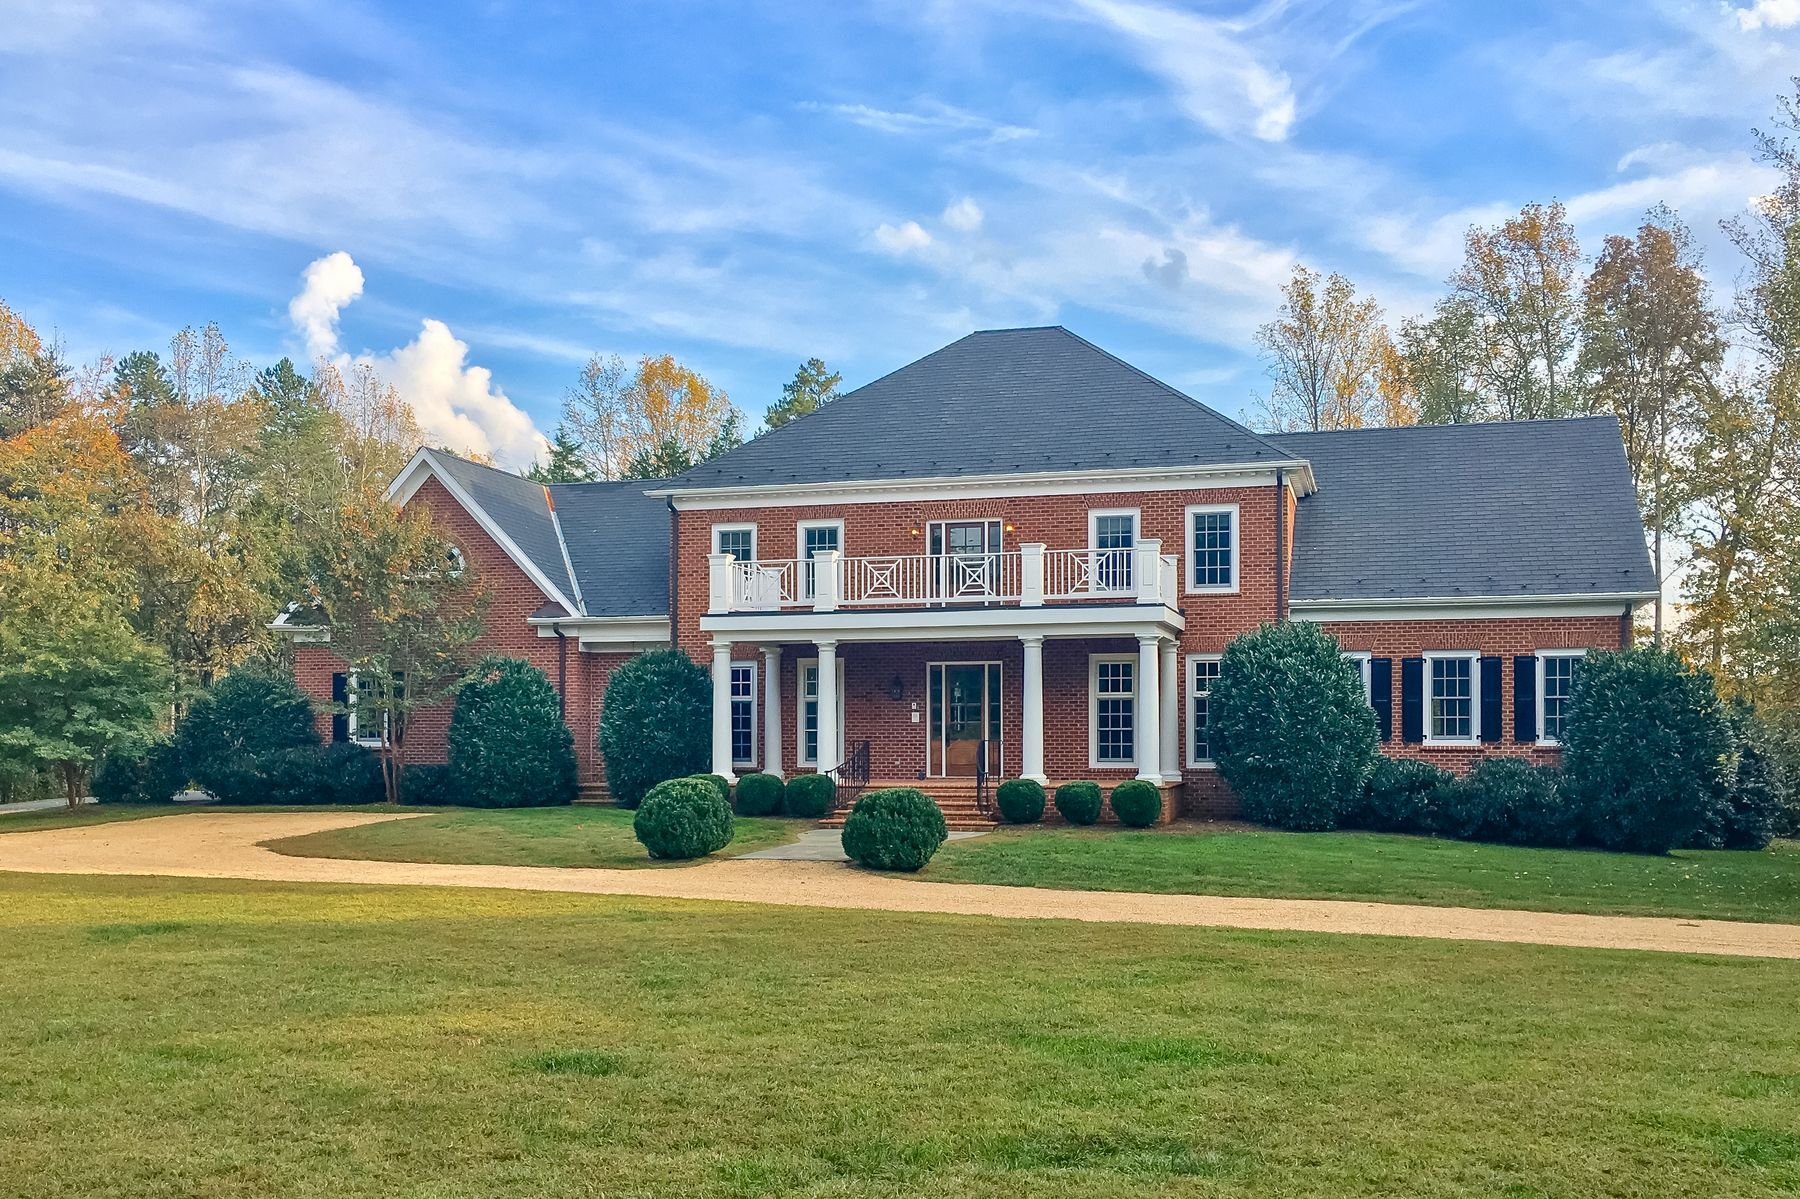 Single Family Home for Sale at 2205 Camargo Drive Charlottesville, Virginia, 22901 United States